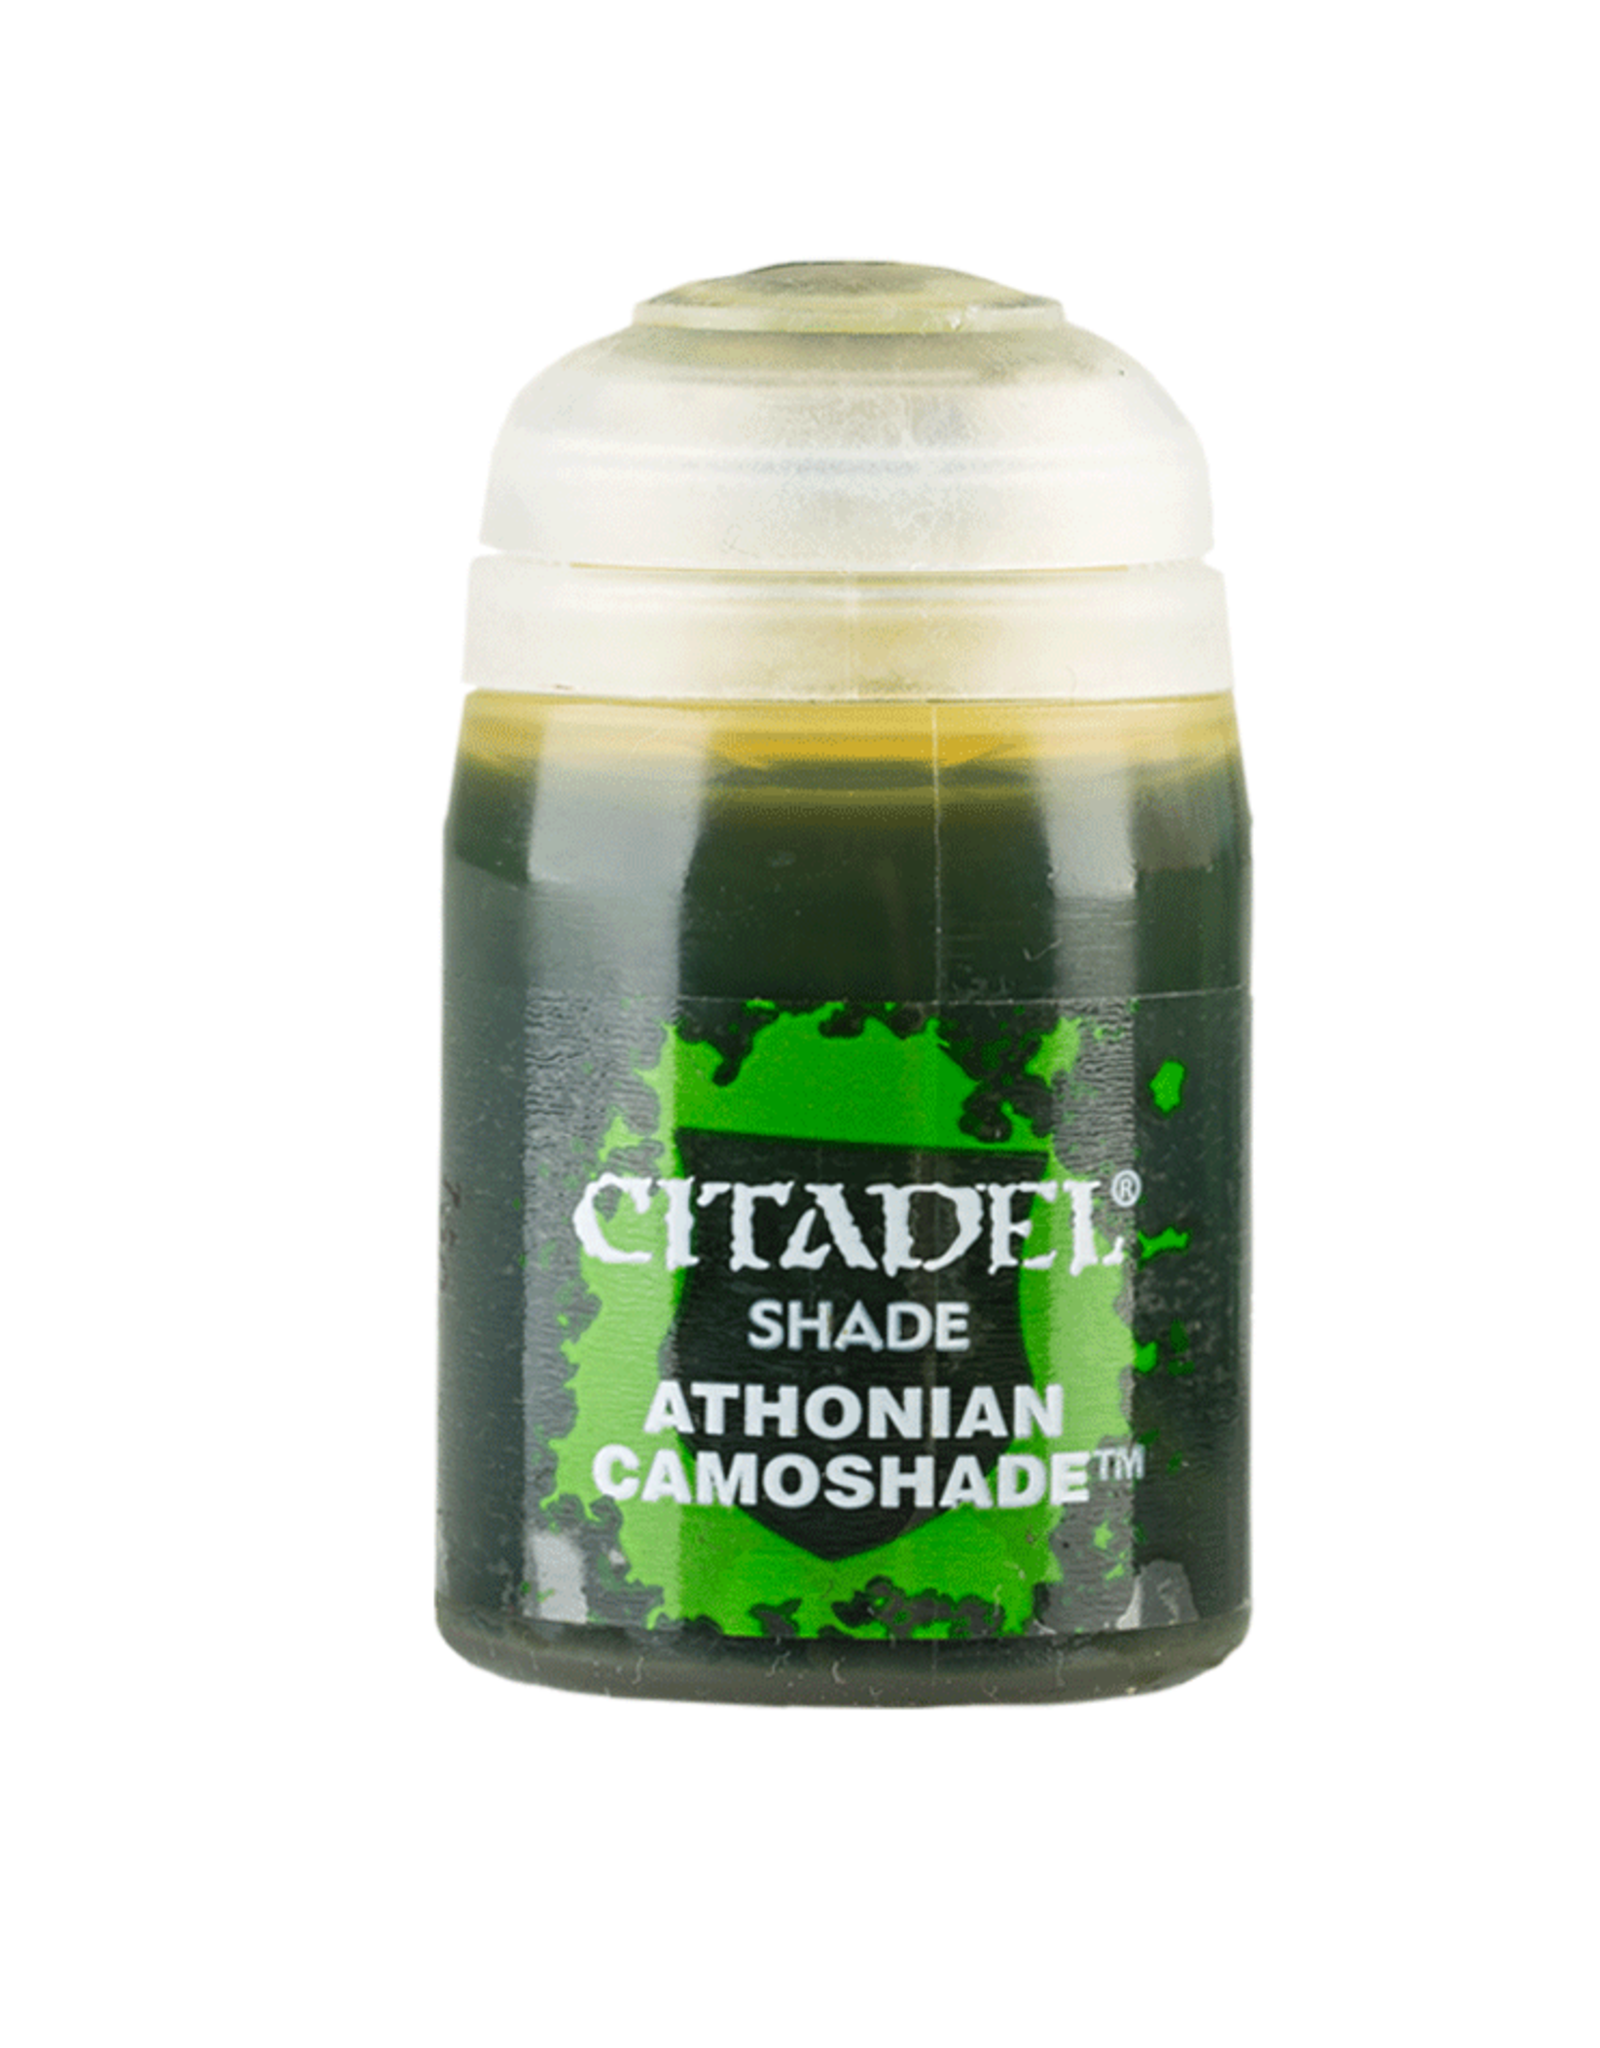 Games Workshop Citadel Shade: Athonian Camoshade (24ml)